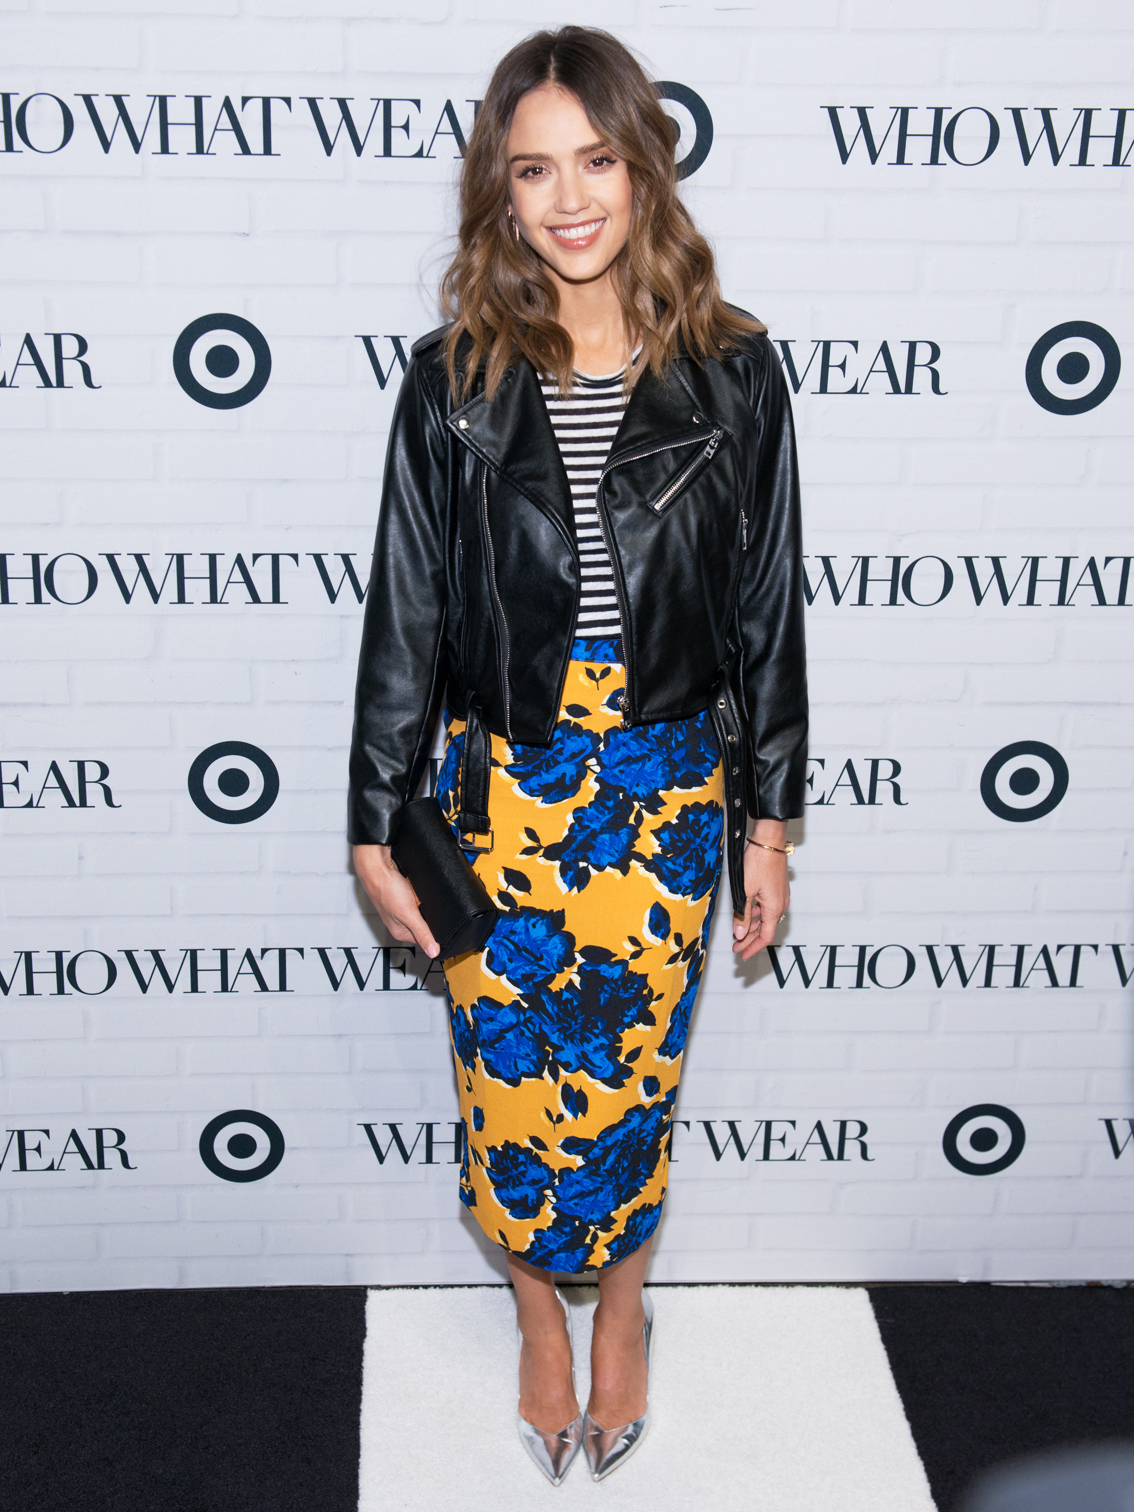 How to Find the Most Flattering Skirt Length, According to Stylists Emily Current and Meritt Elliott